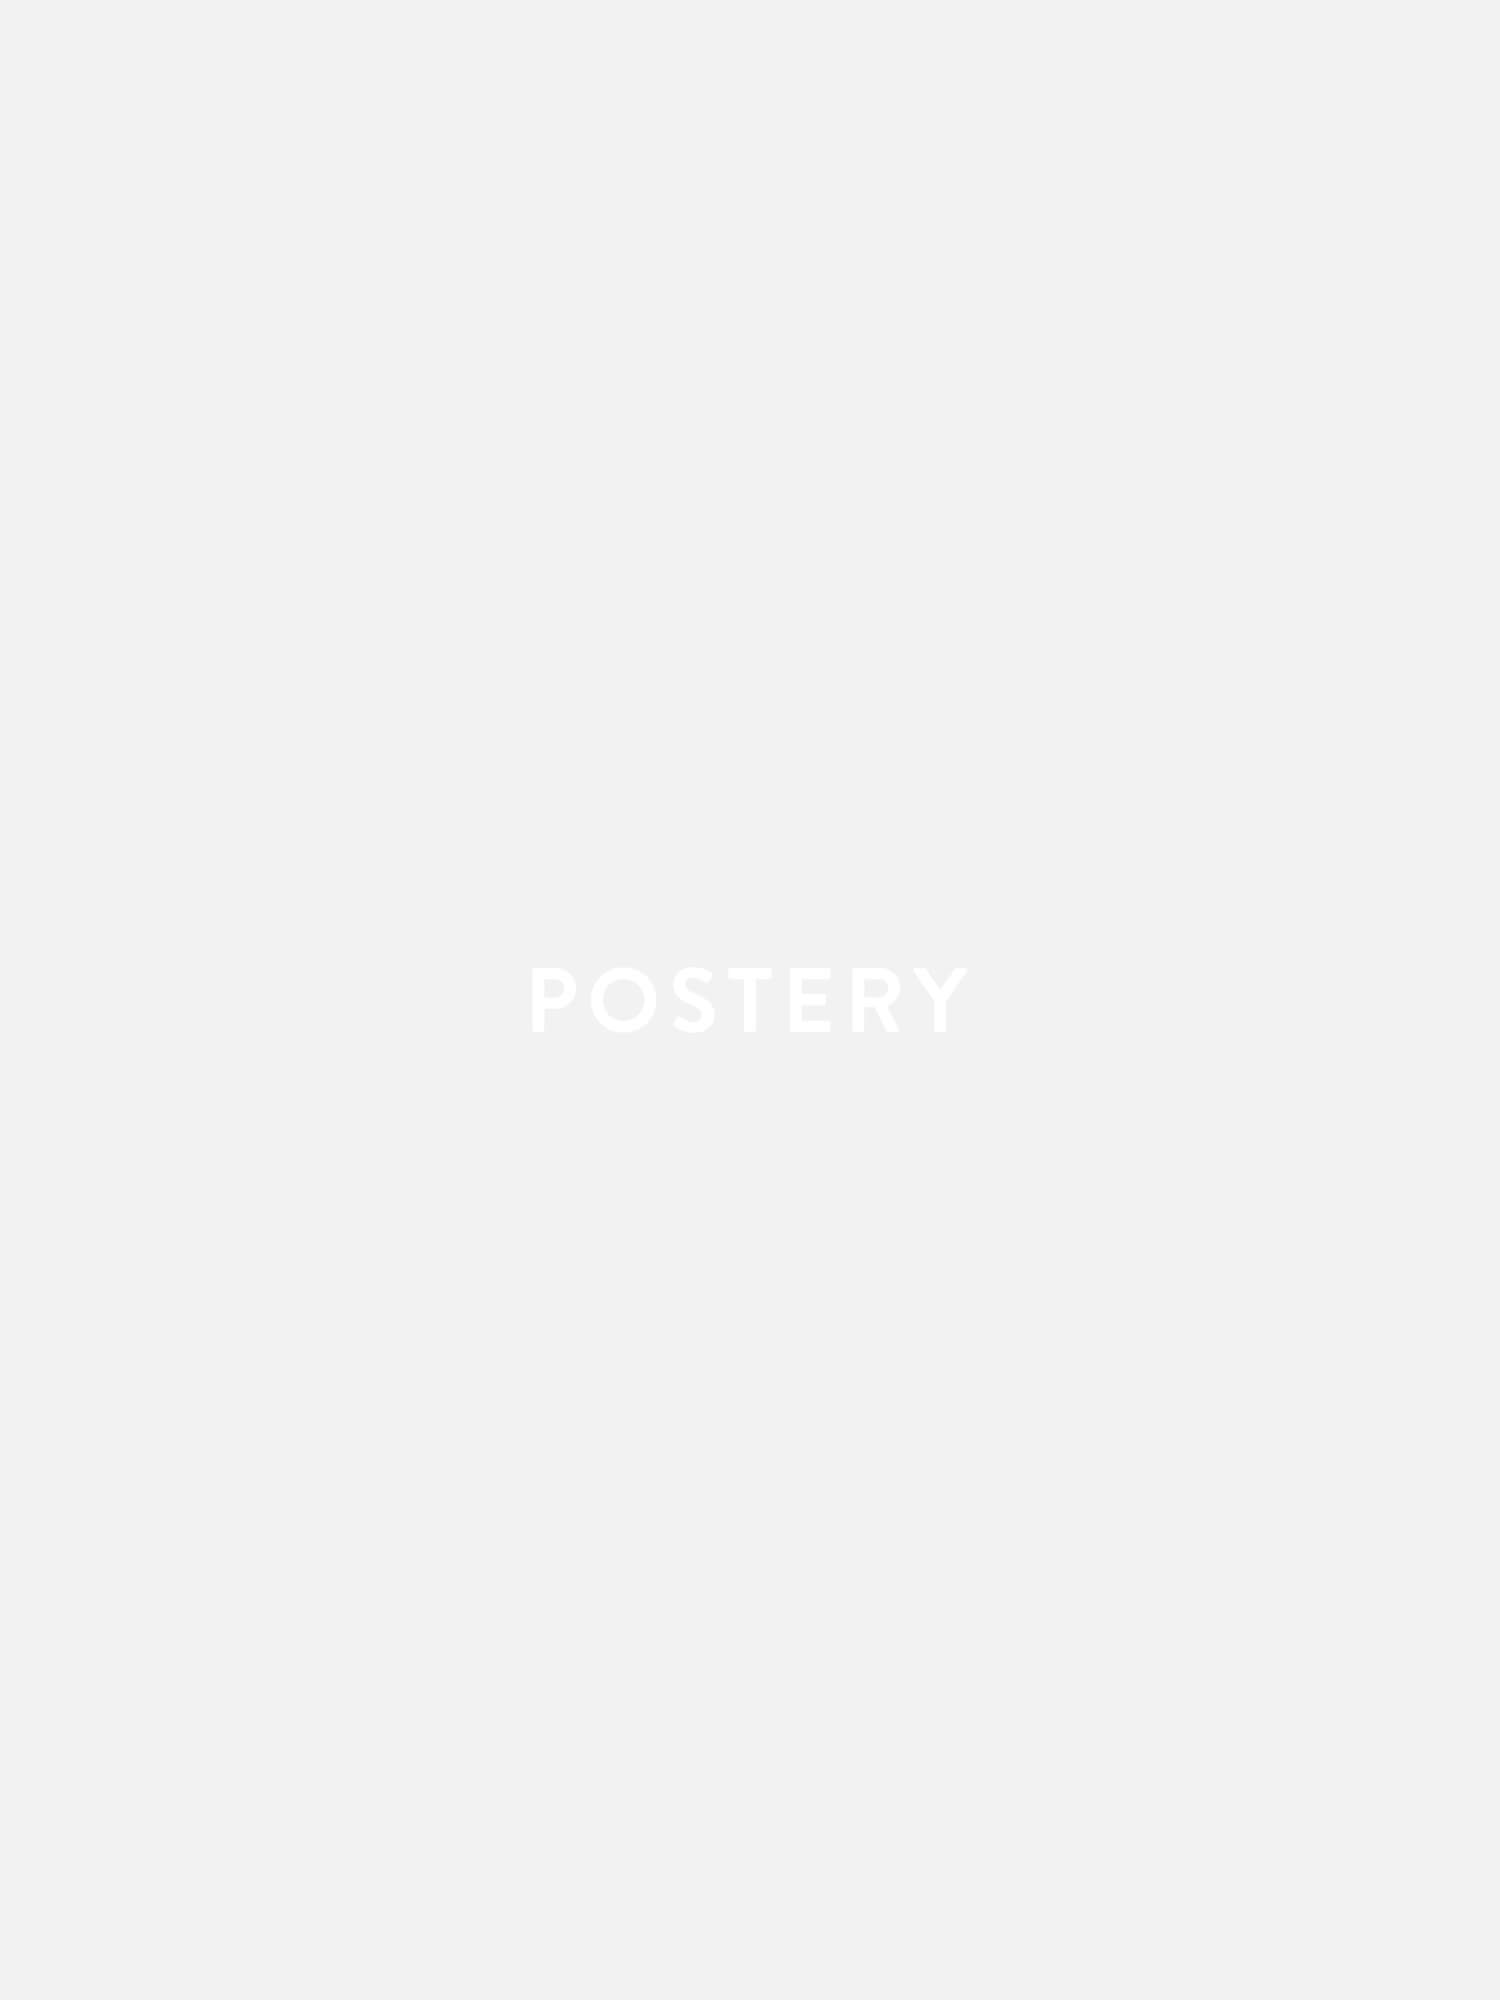 Sister Superpower Poster